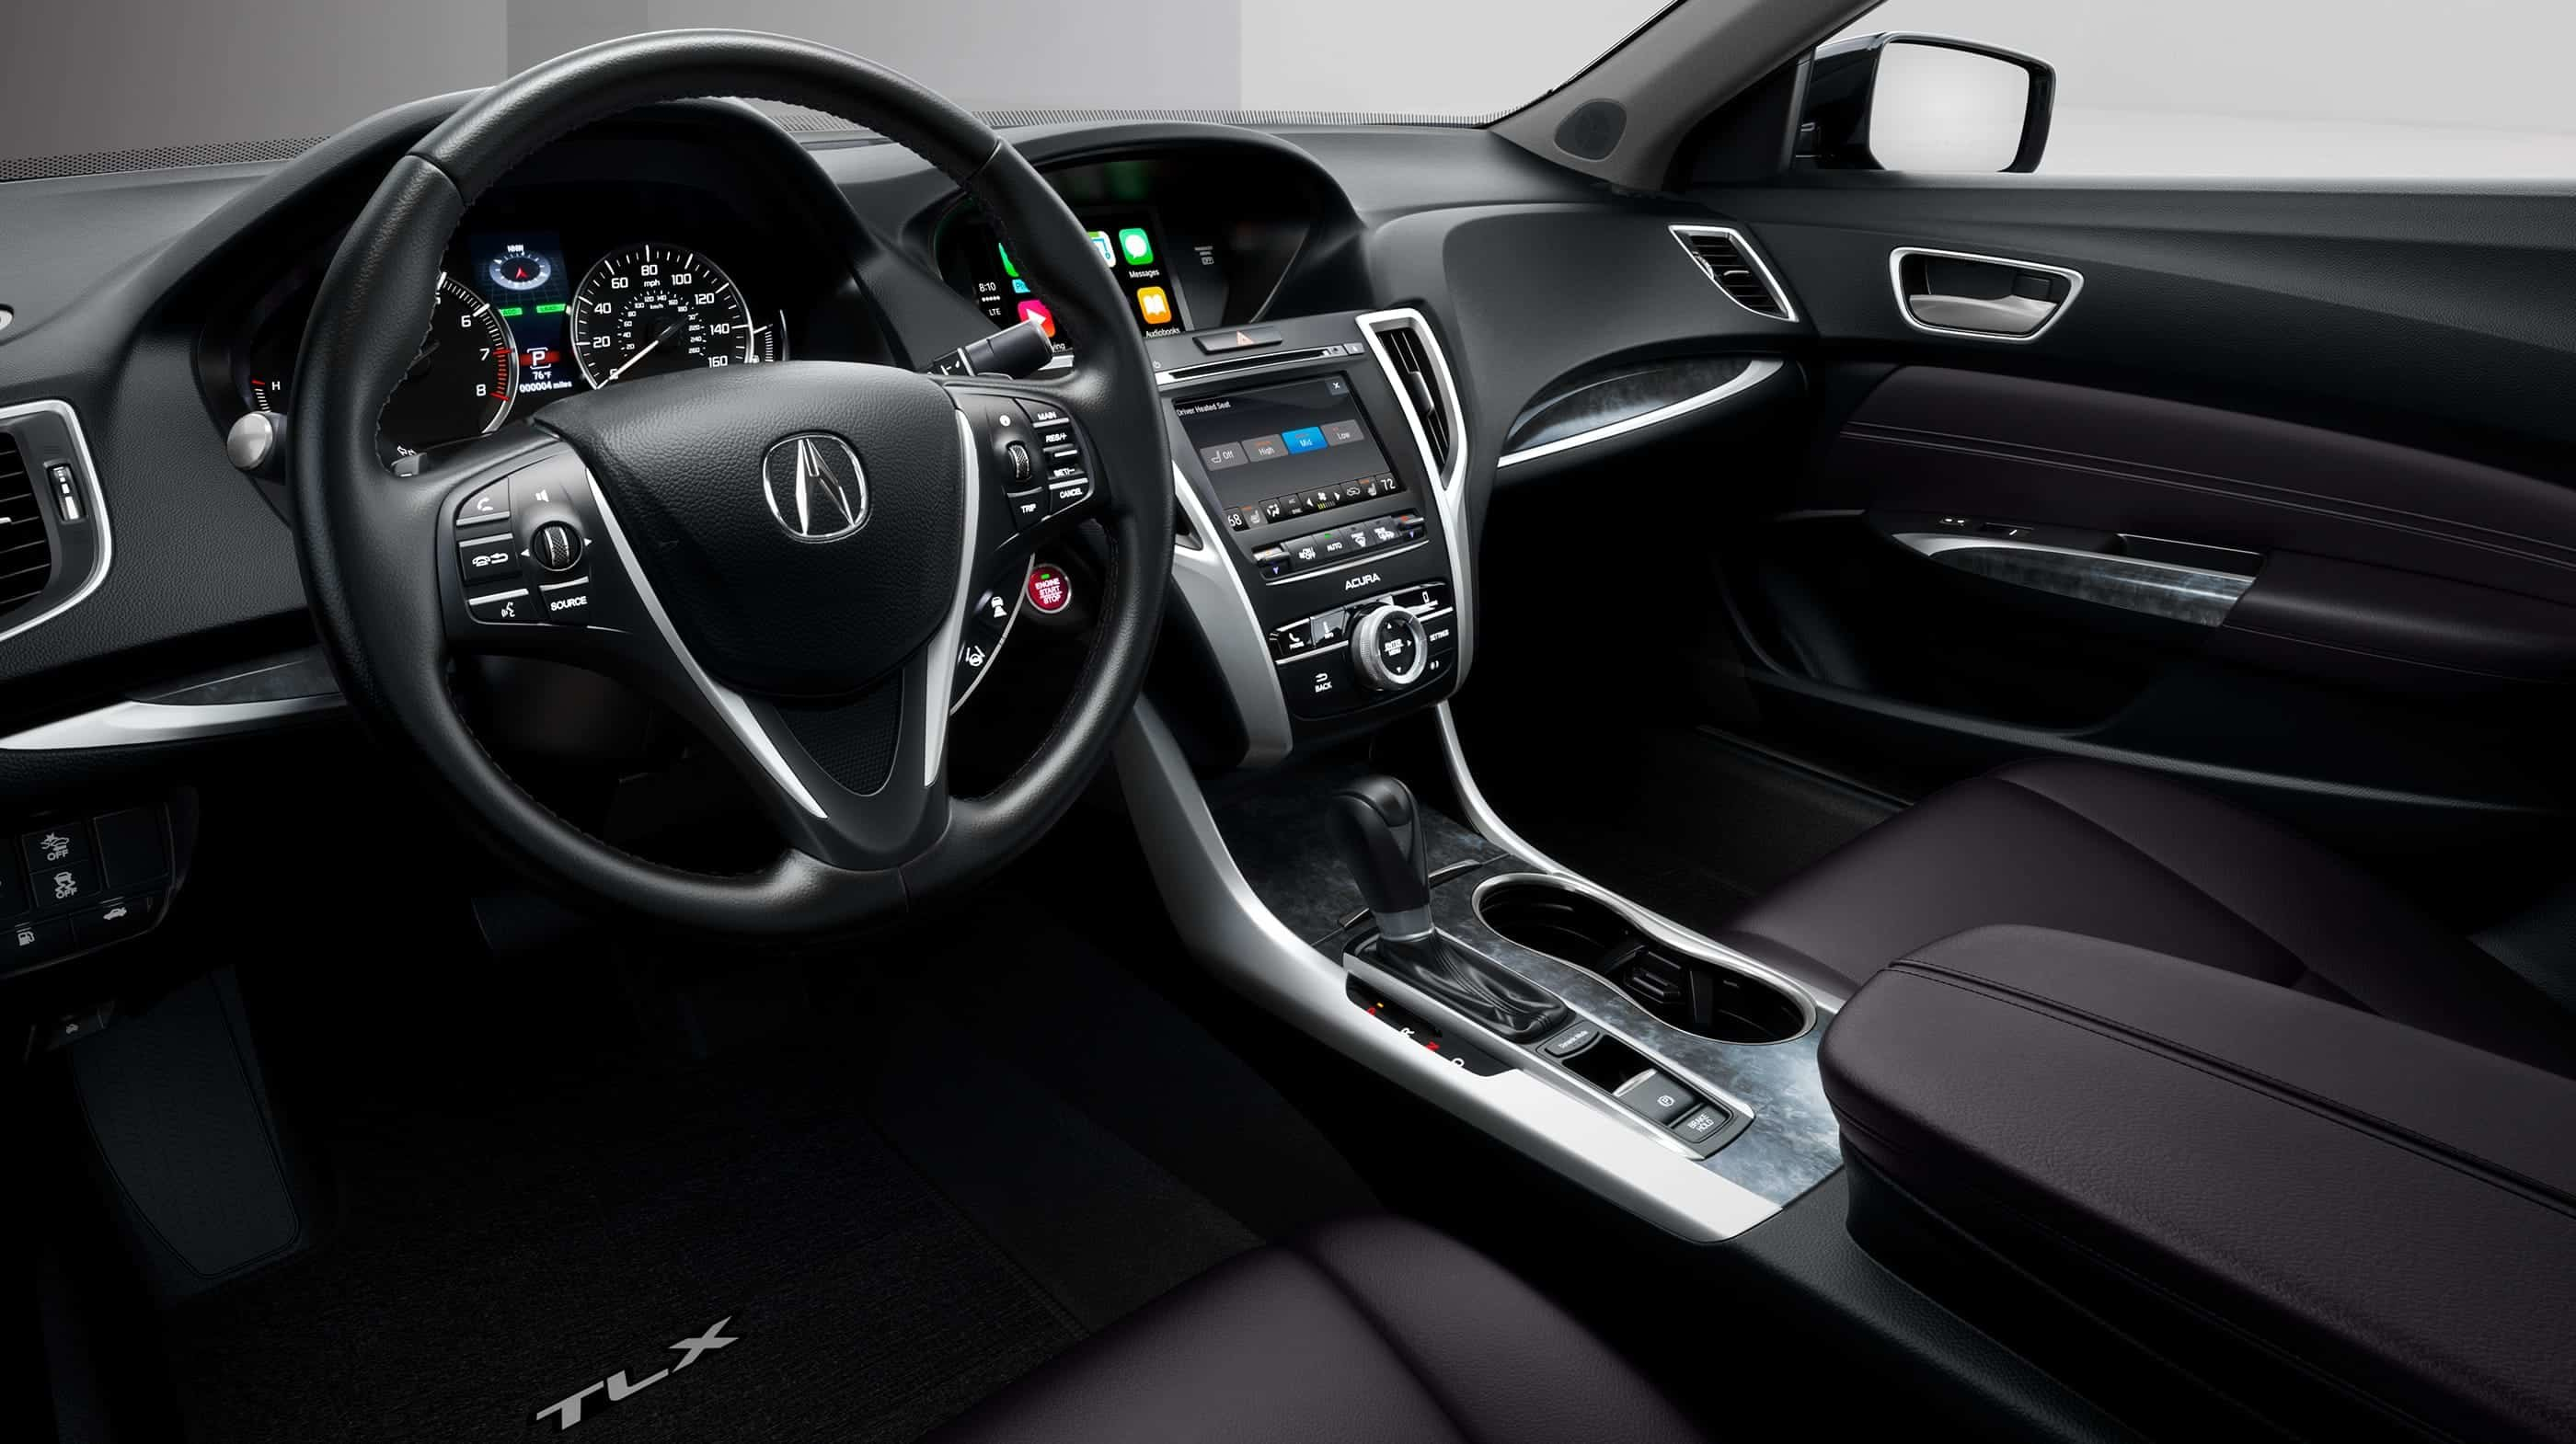 Acura TLX Price & Lease Incentives - Bethesda,MD on acura xli, acura ls, acura rsx,